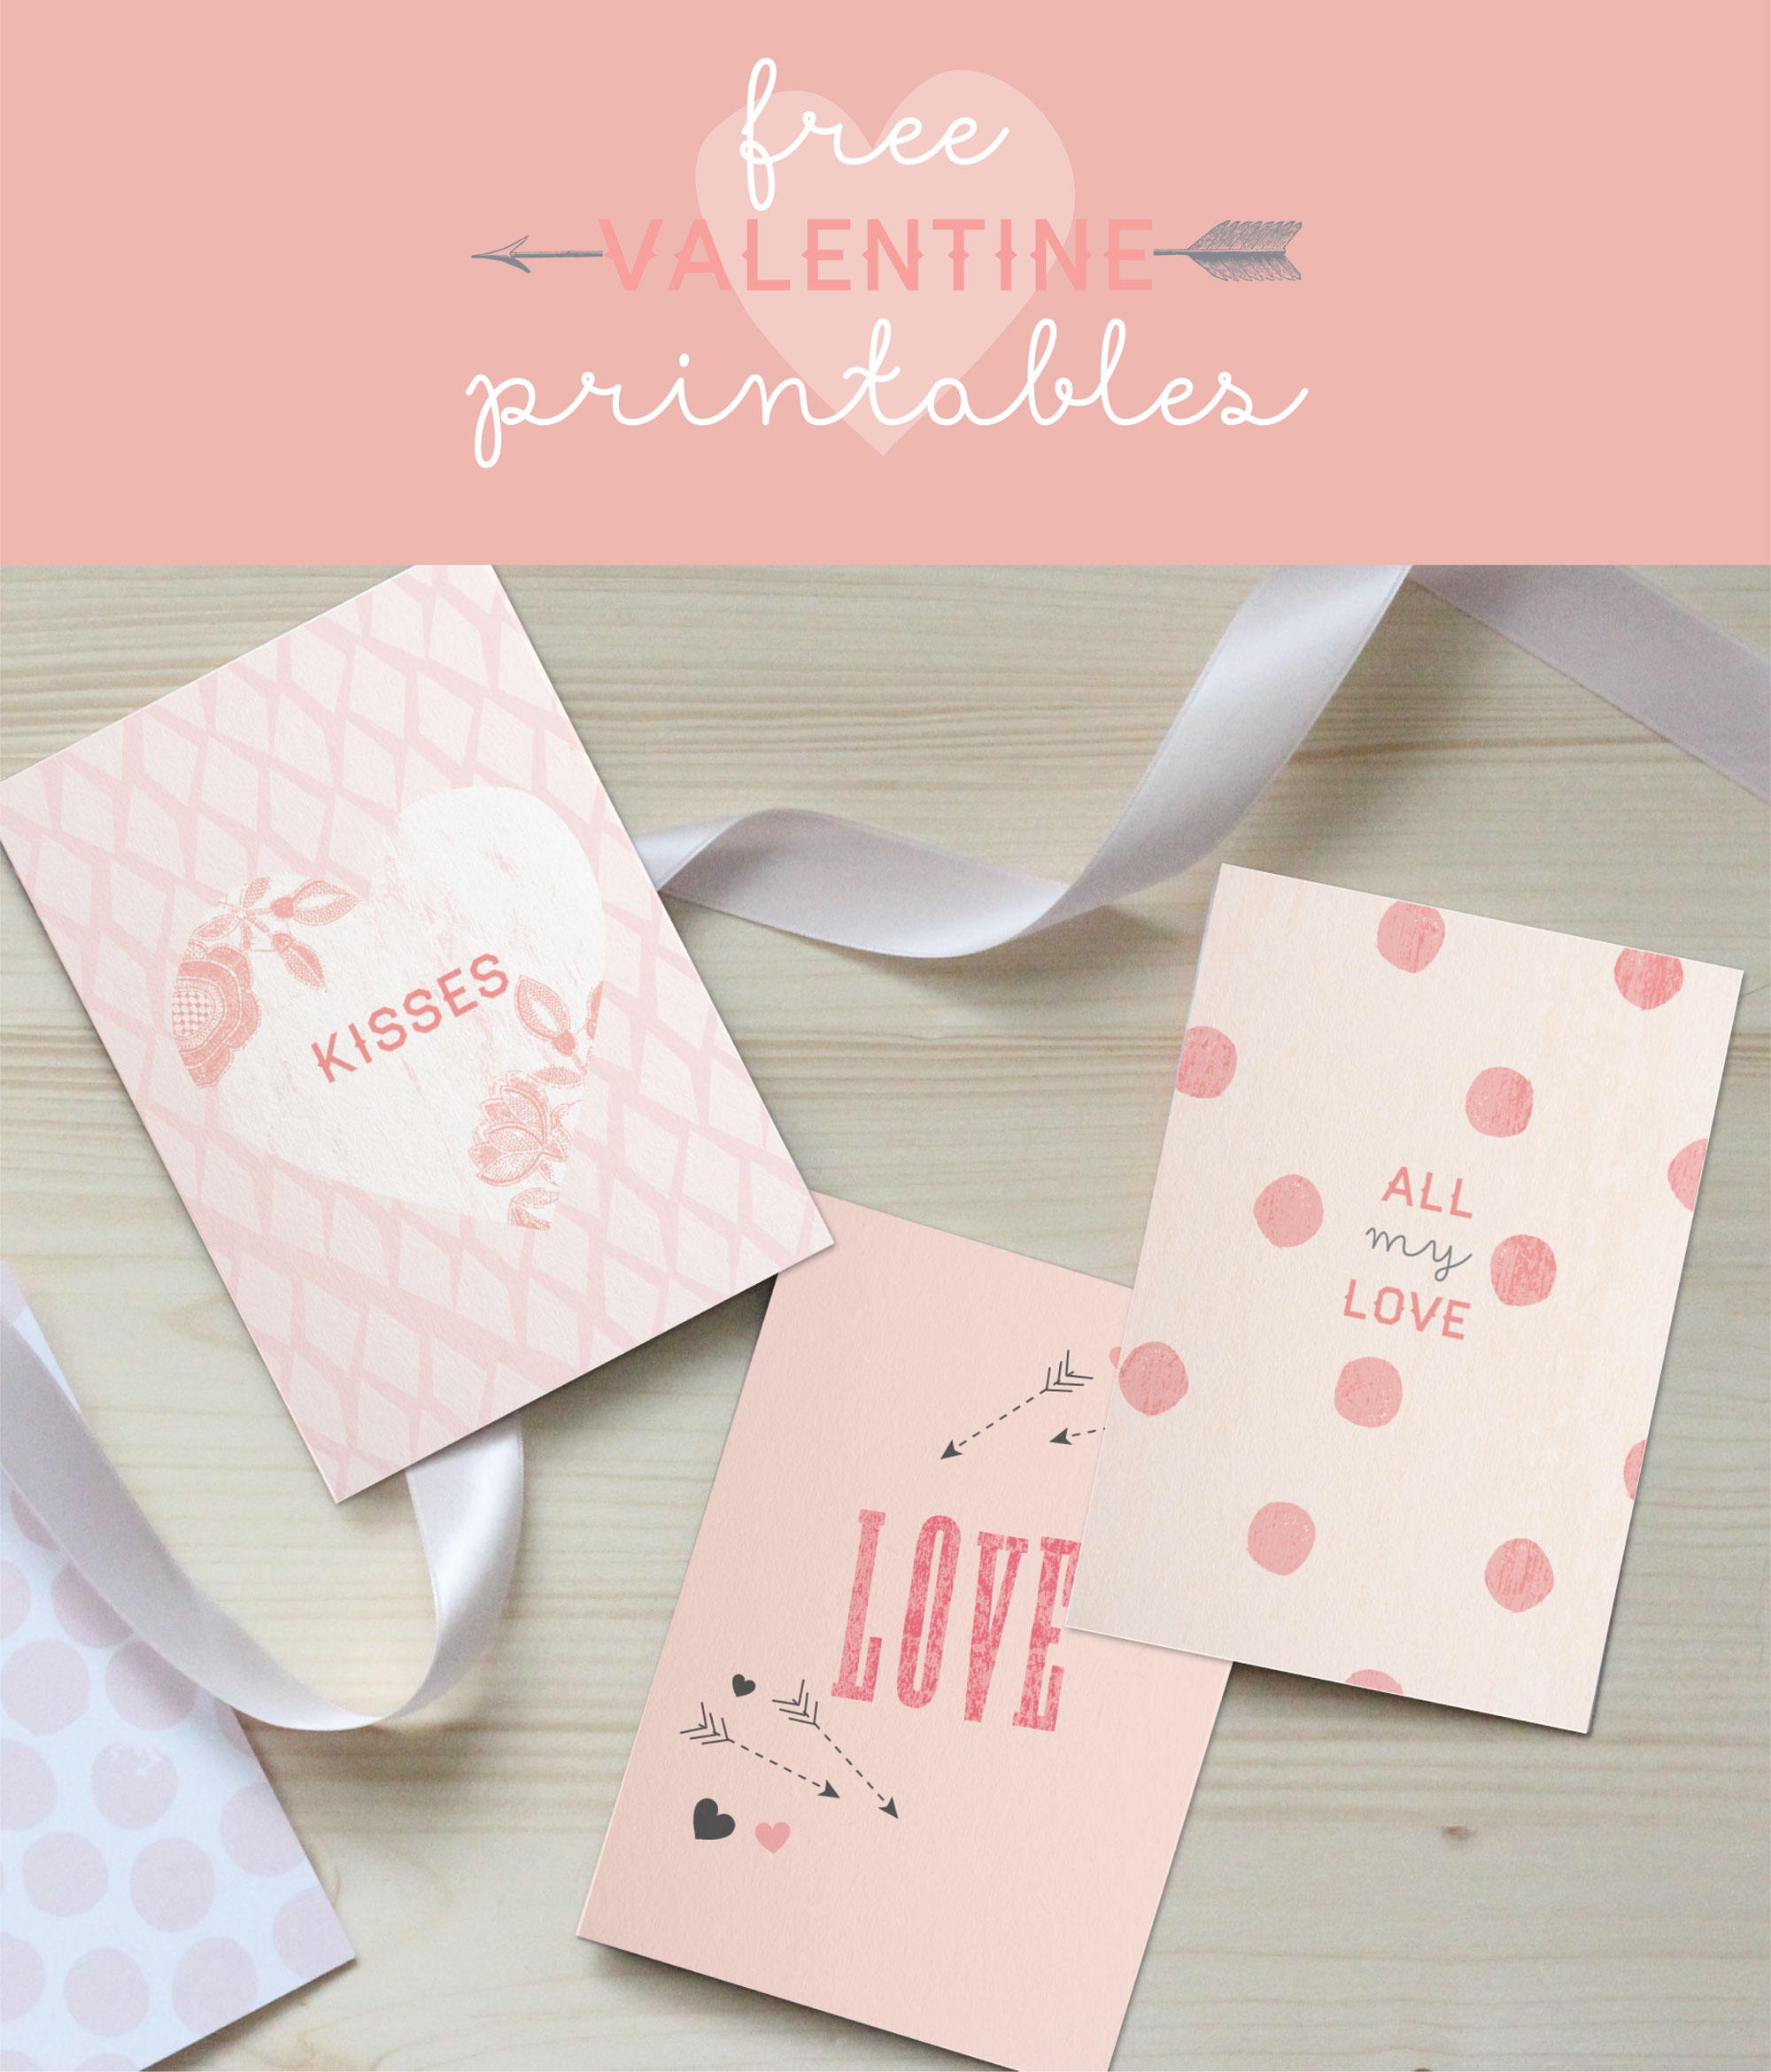 Free Valentine's Printables from Studio Seed